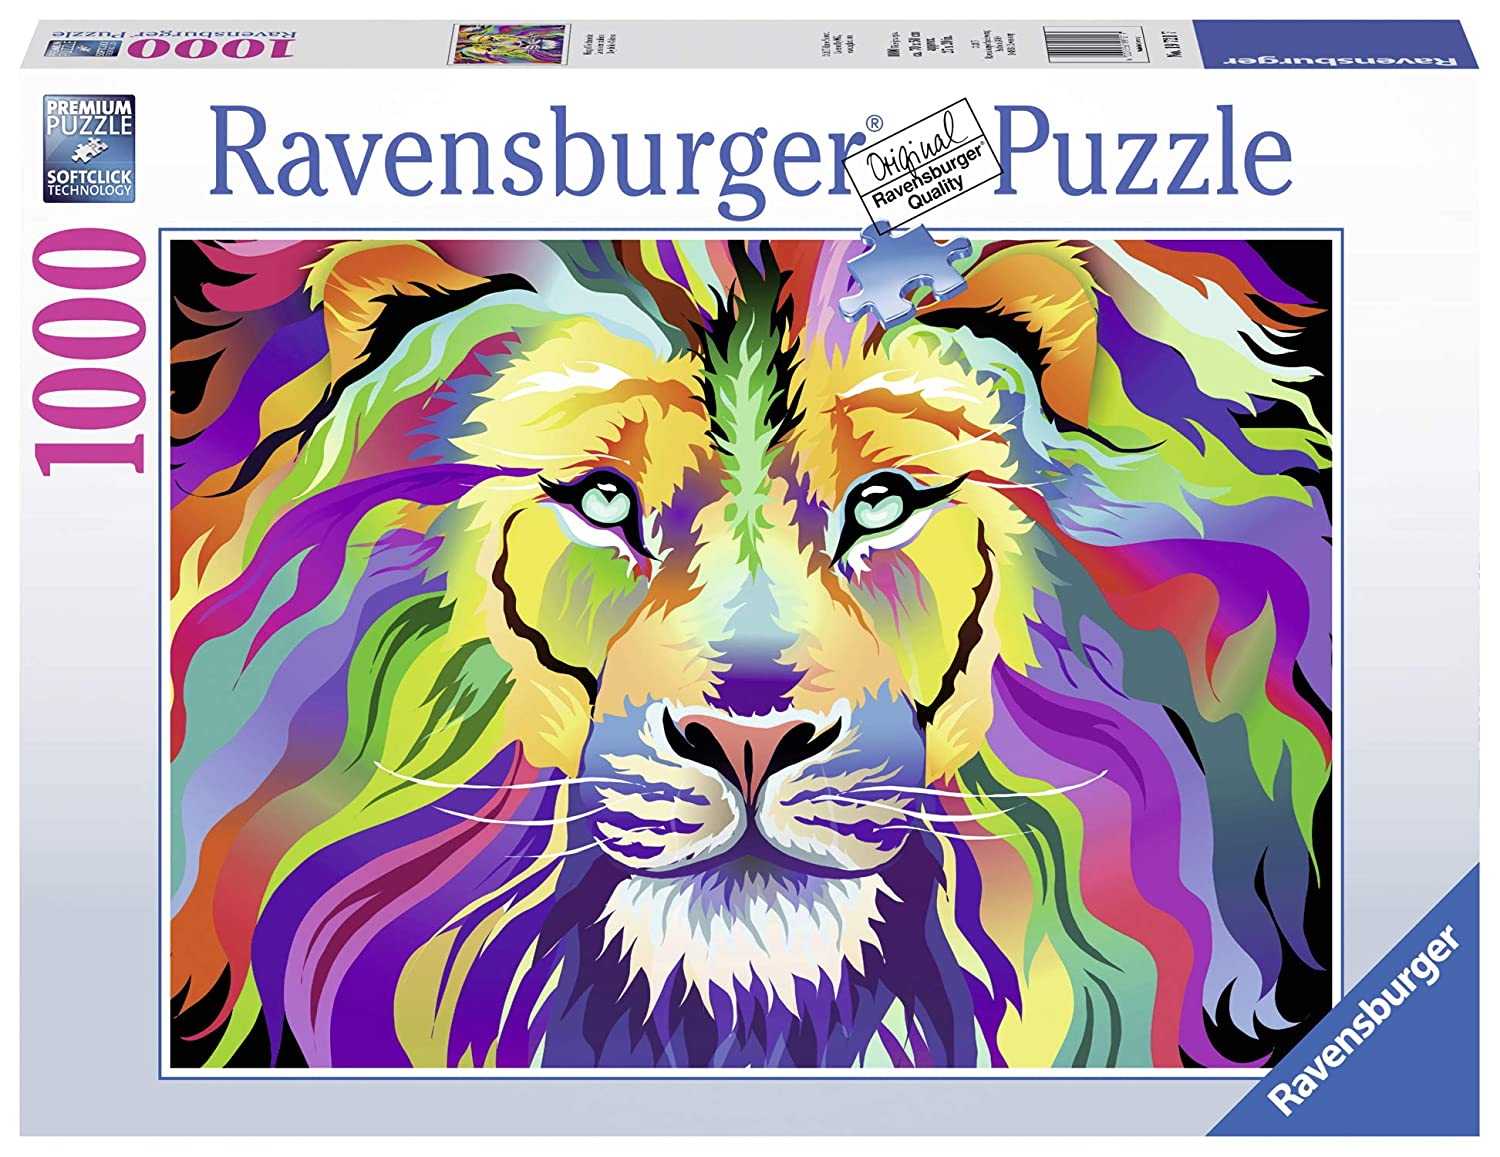 Ravensburger King of Technicolor 1000 Piece Jigsaw Puzzle for Adults – Every Piece is Unique, Softclick Technology Means Pieces Fit Together Perfectly